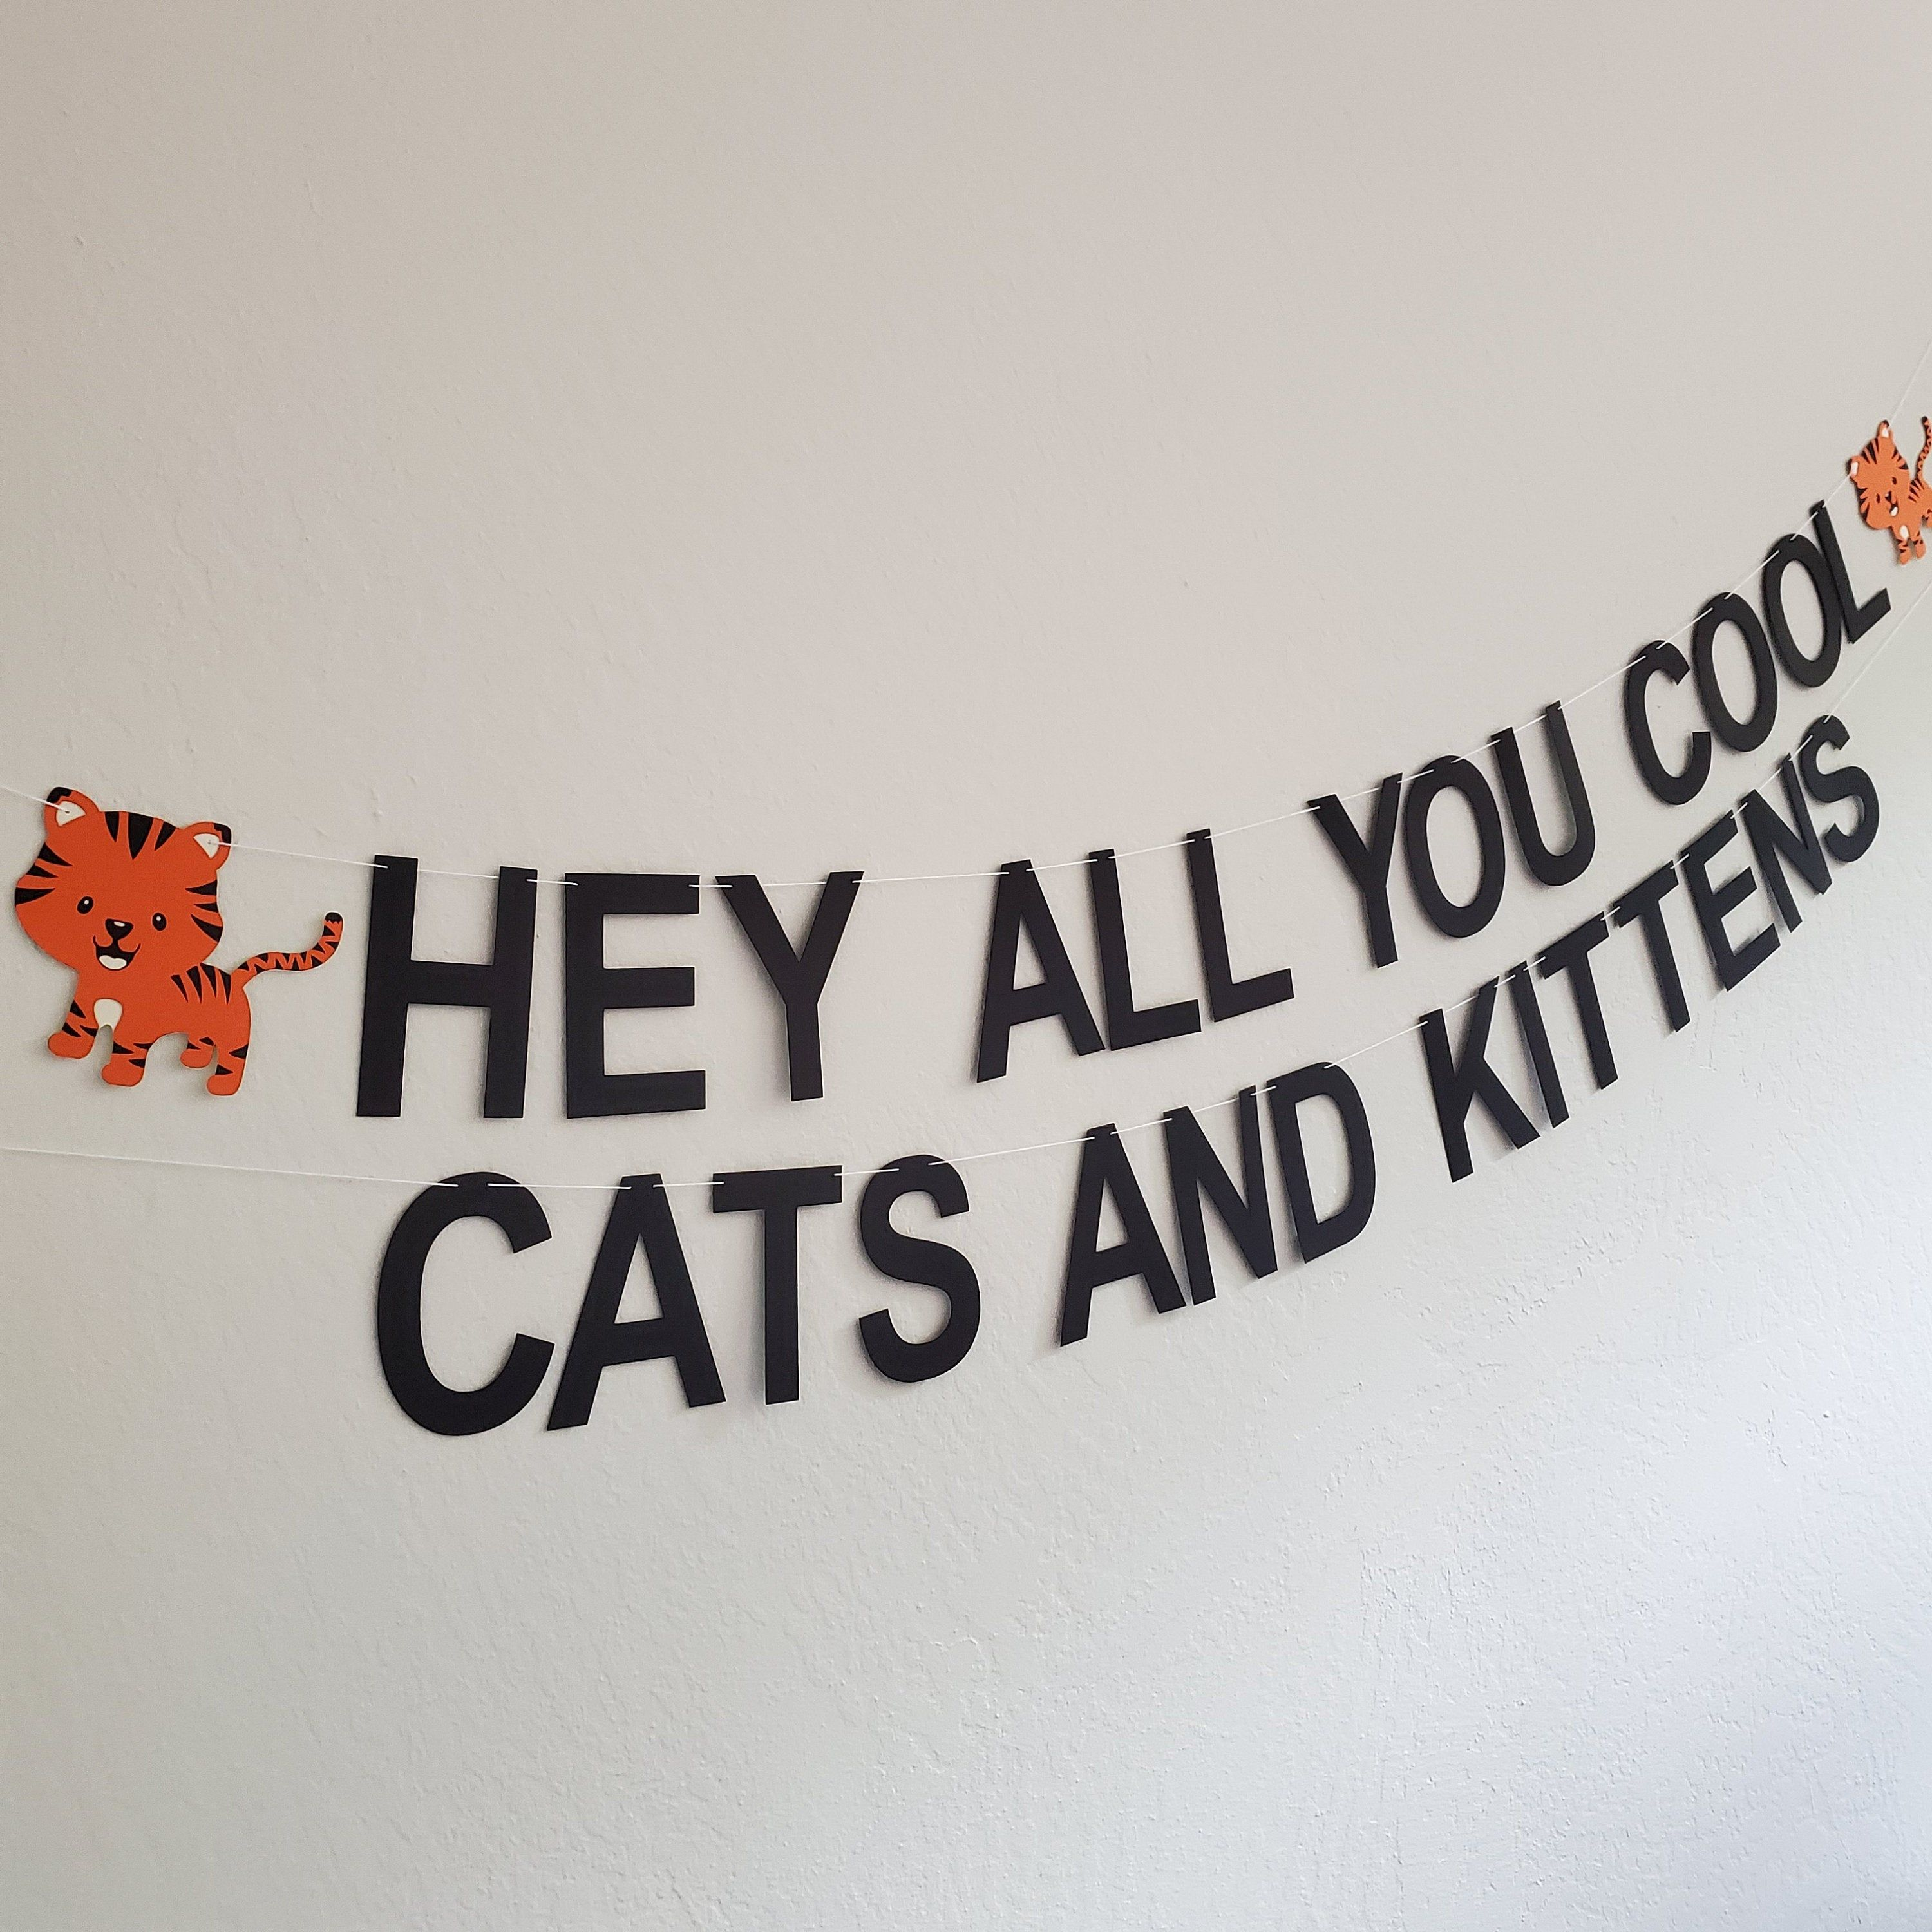 Hey All You Cool Cats And Kittens Carole Baskin Banner Tiger Etsy In 2020 Kitten Party Cool Cats Cats And Kittens